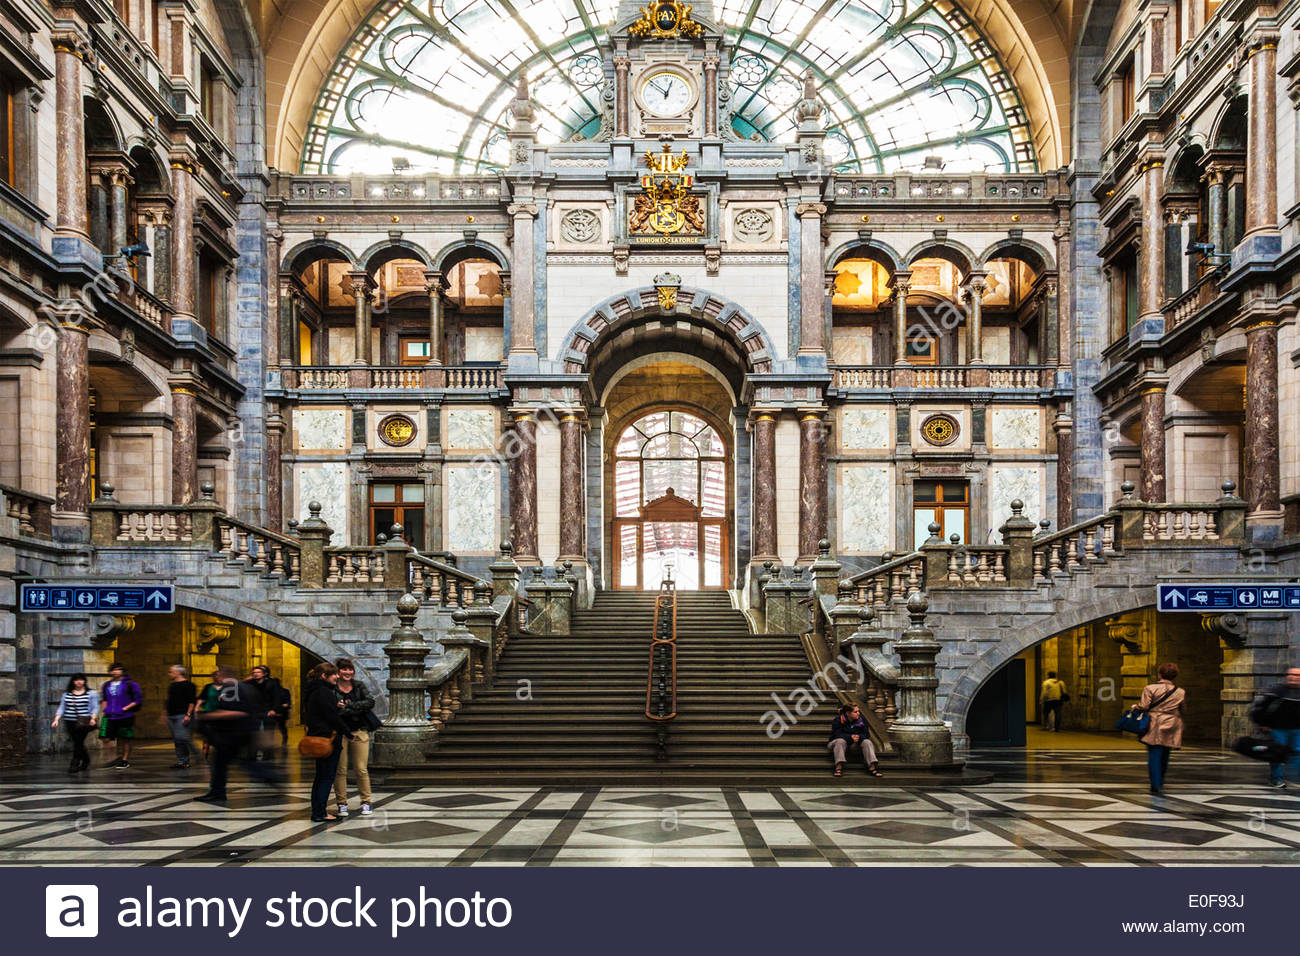 Antwerpen-Centraal Antwerp, The grand waiting and entrance hall of the Antwerpen-Centraal ...